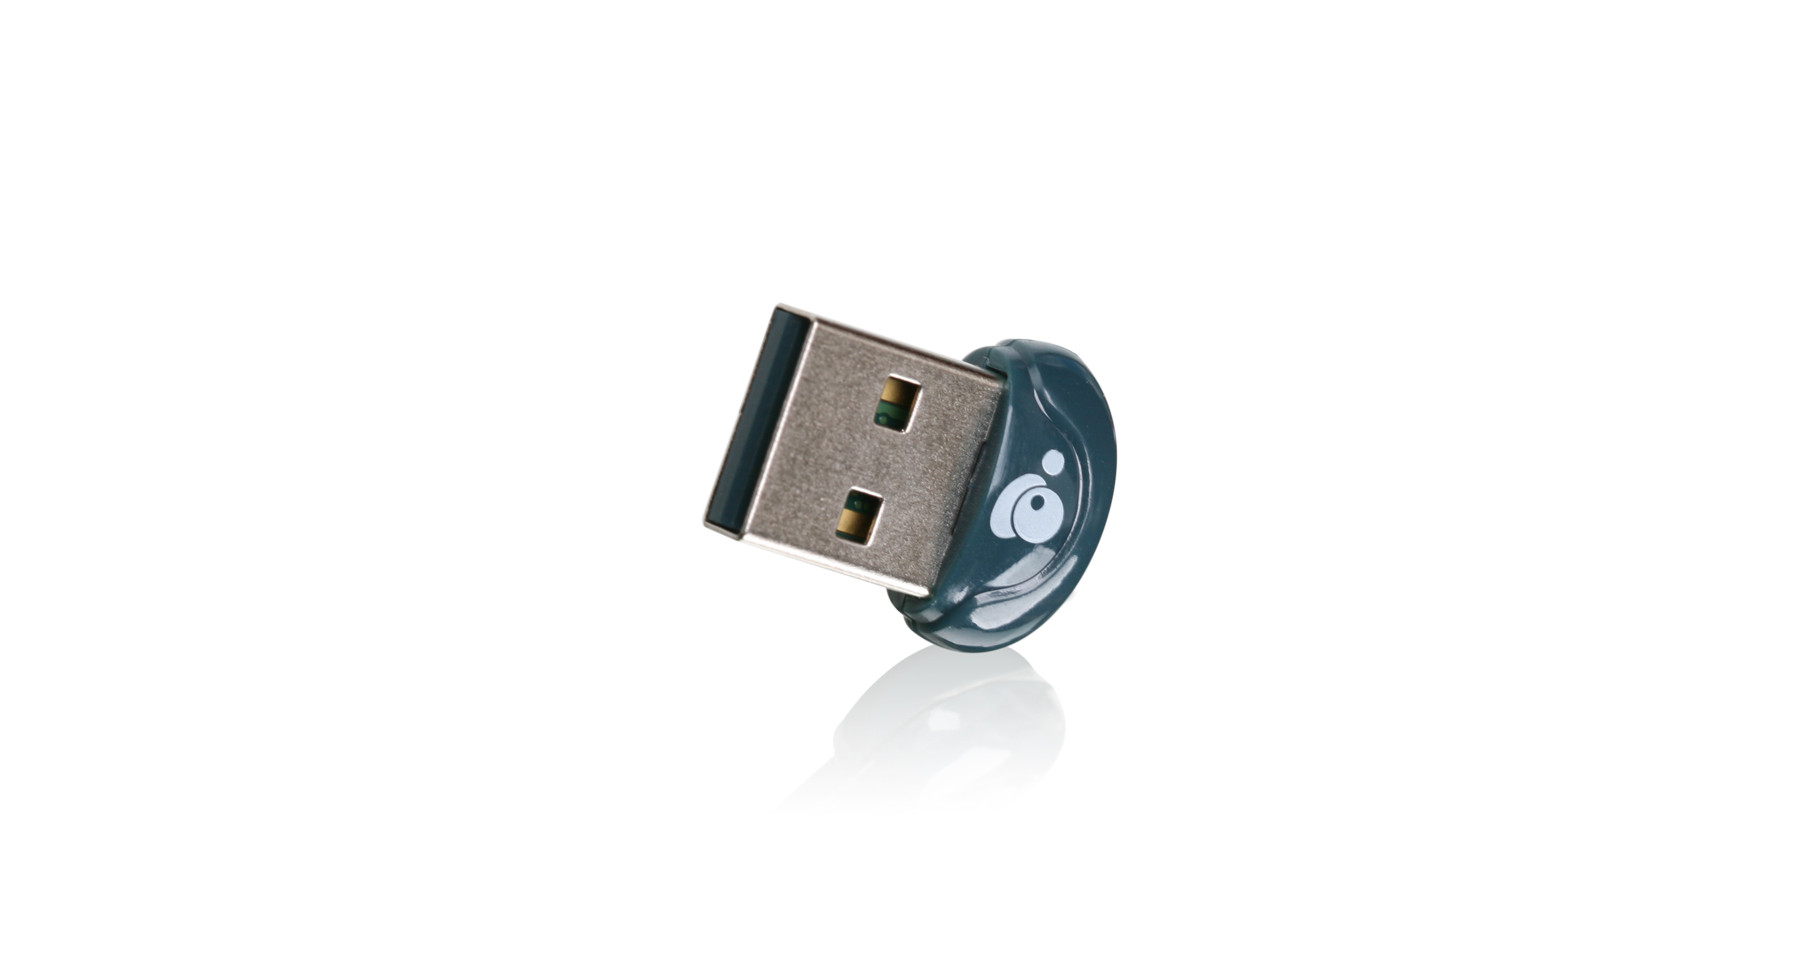 IOGEAR MINI BLUETOOTH 4.0 GBU521W6 DONGLE USB